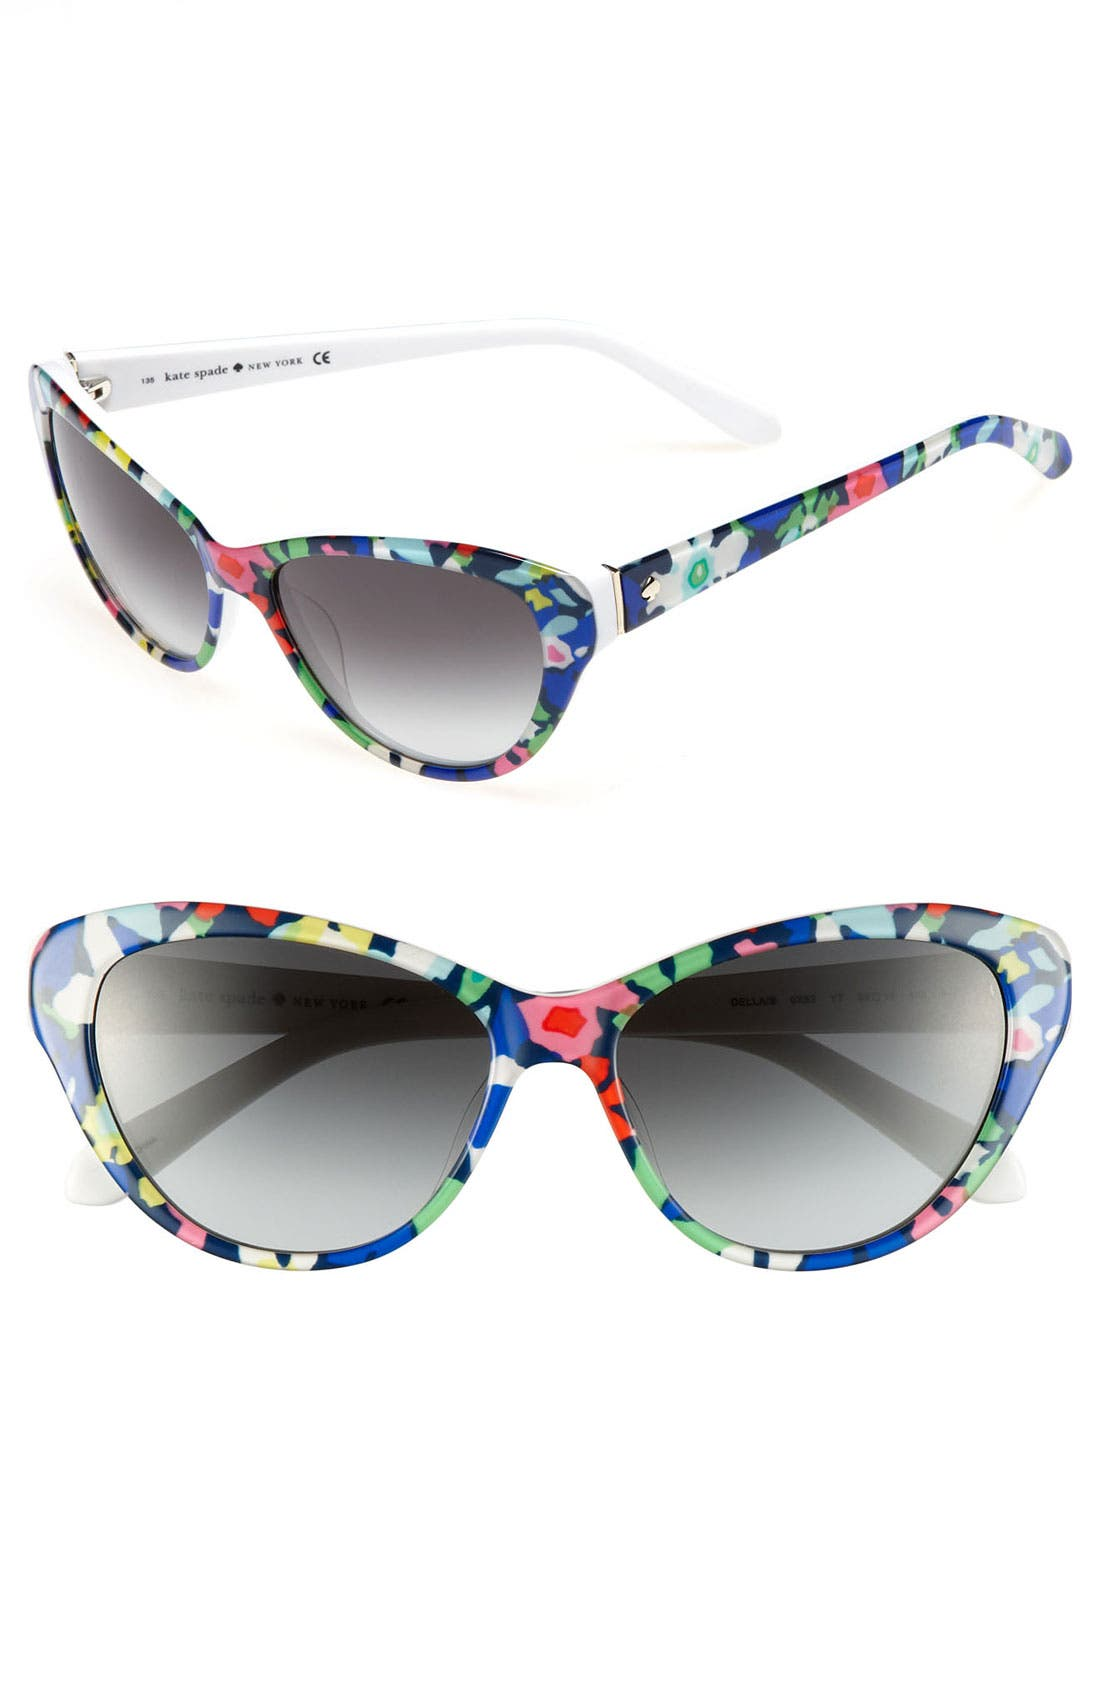 Alternate Image 1 Selected - kate spade new york 'della' 55mm sunglasses